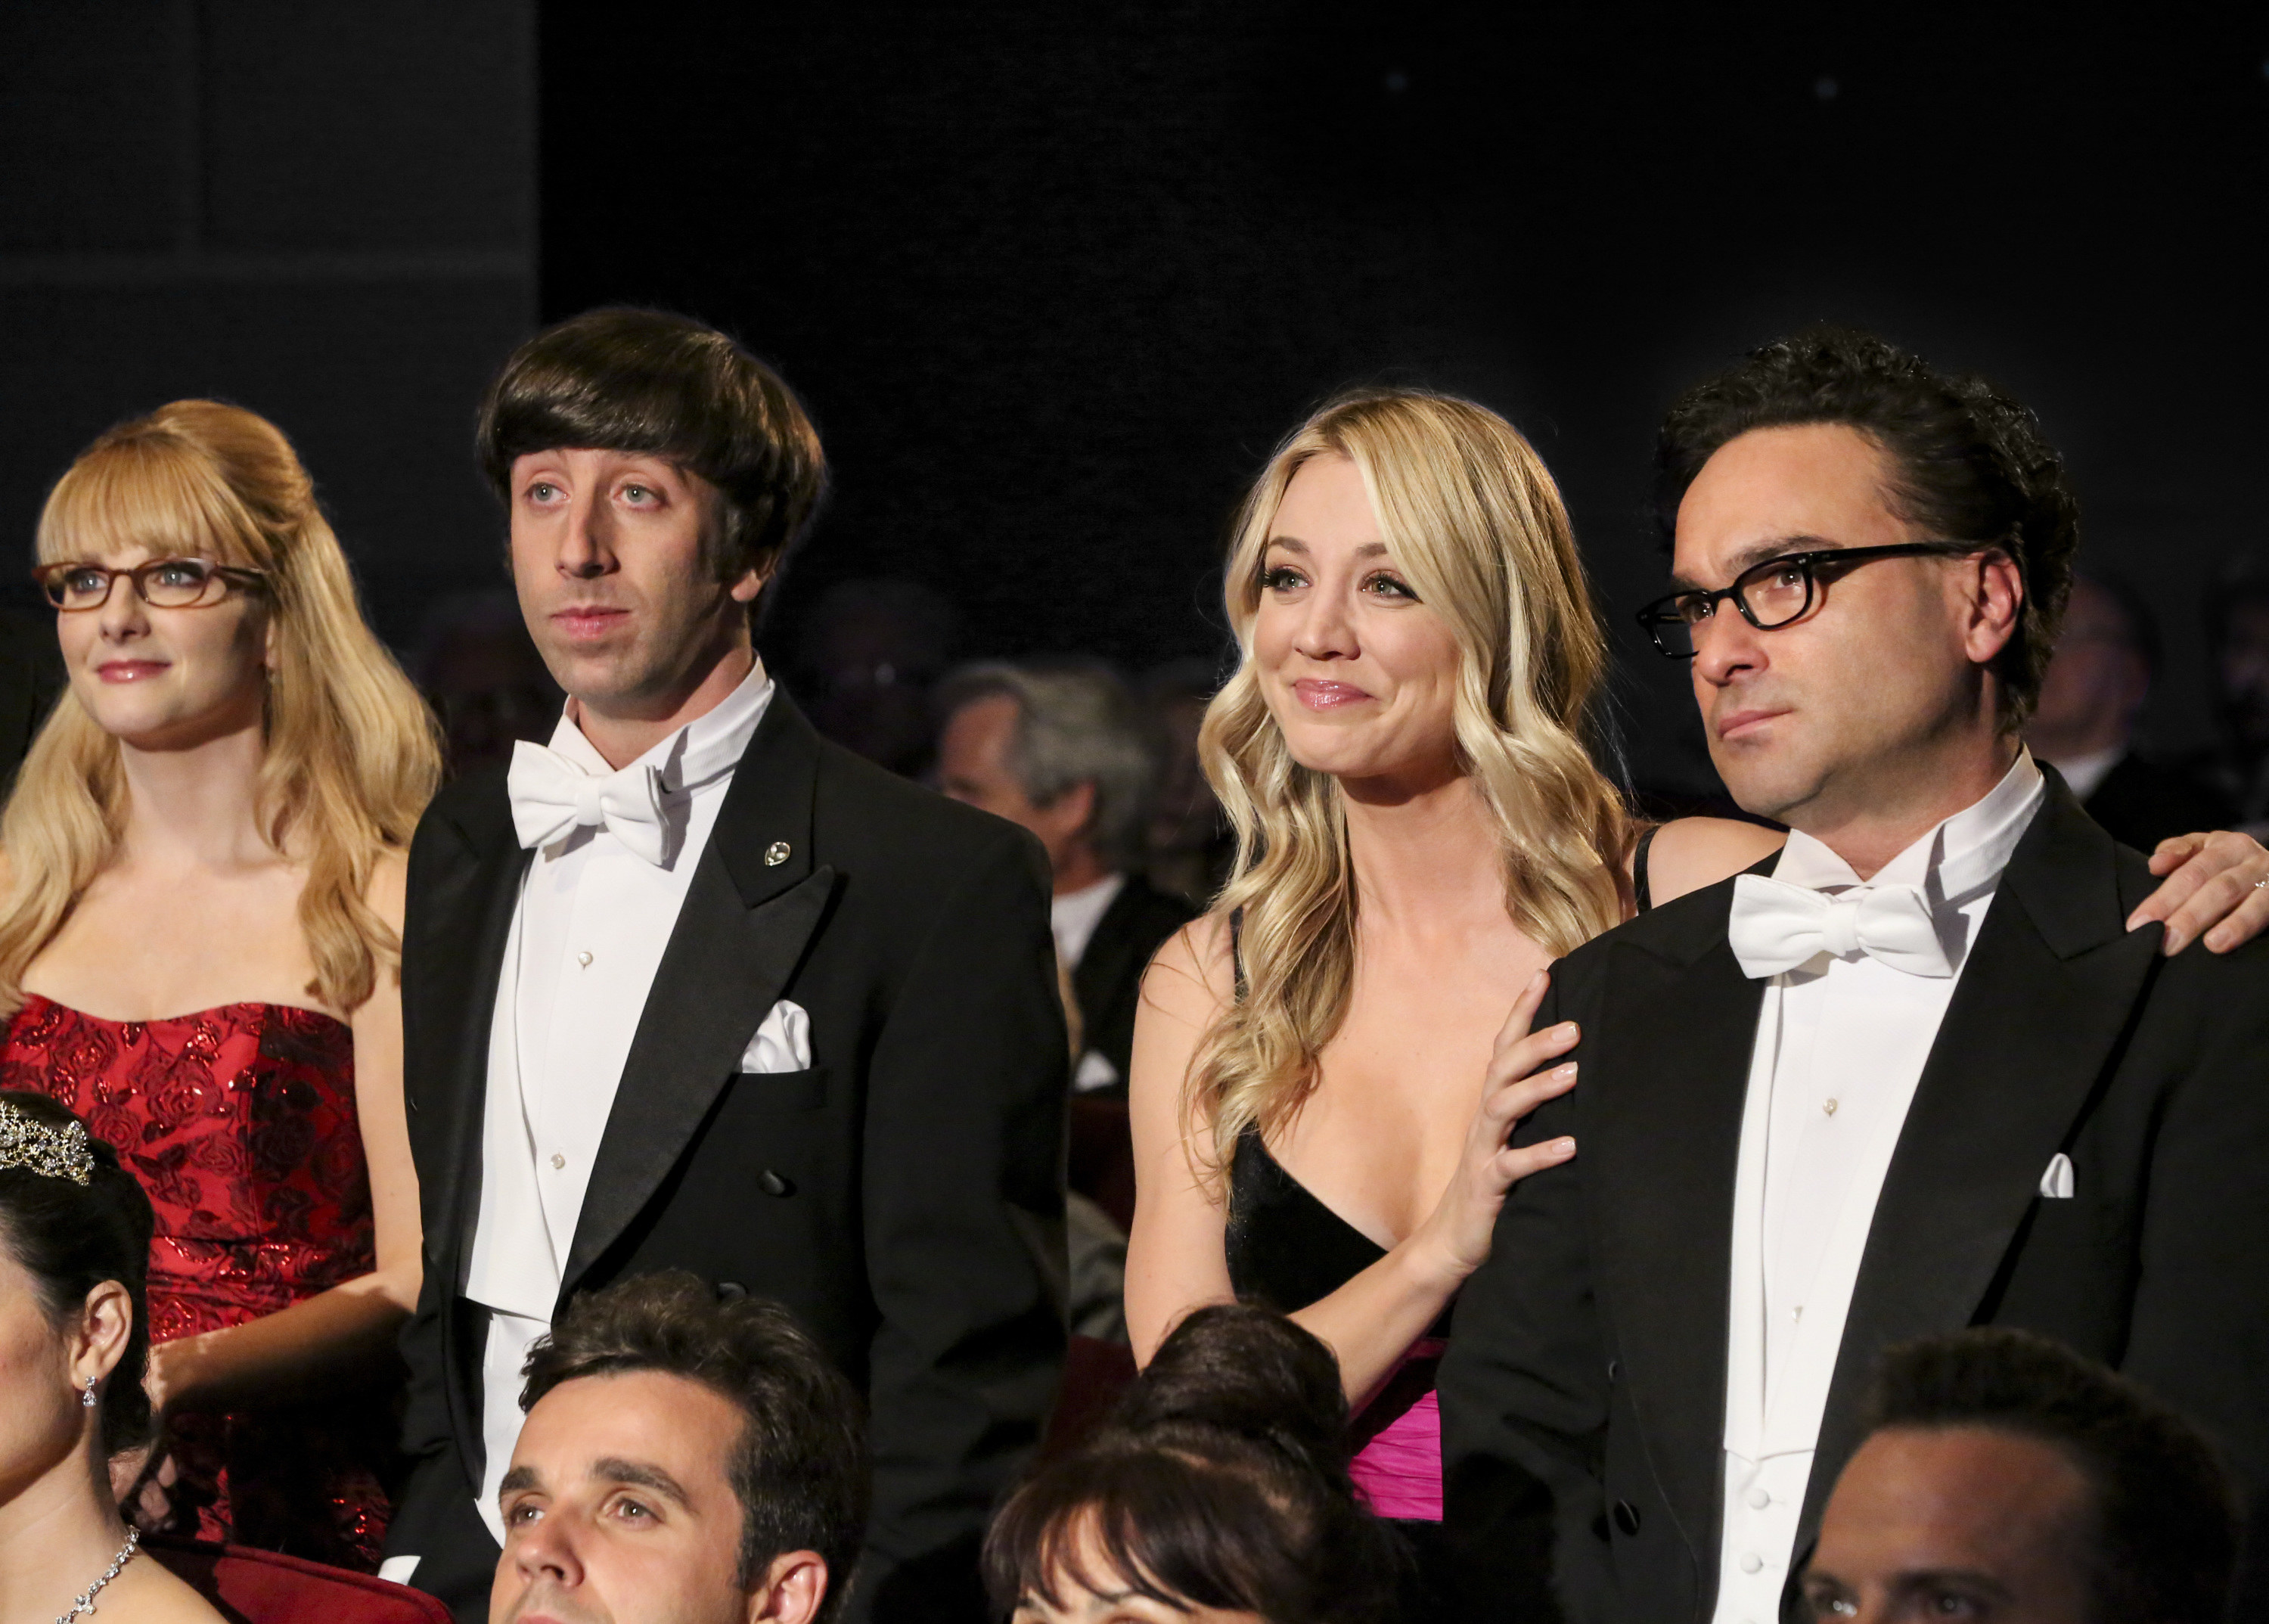 Leonard, Penny, Howard, and Bernadette stand in the audience at a black-tie event